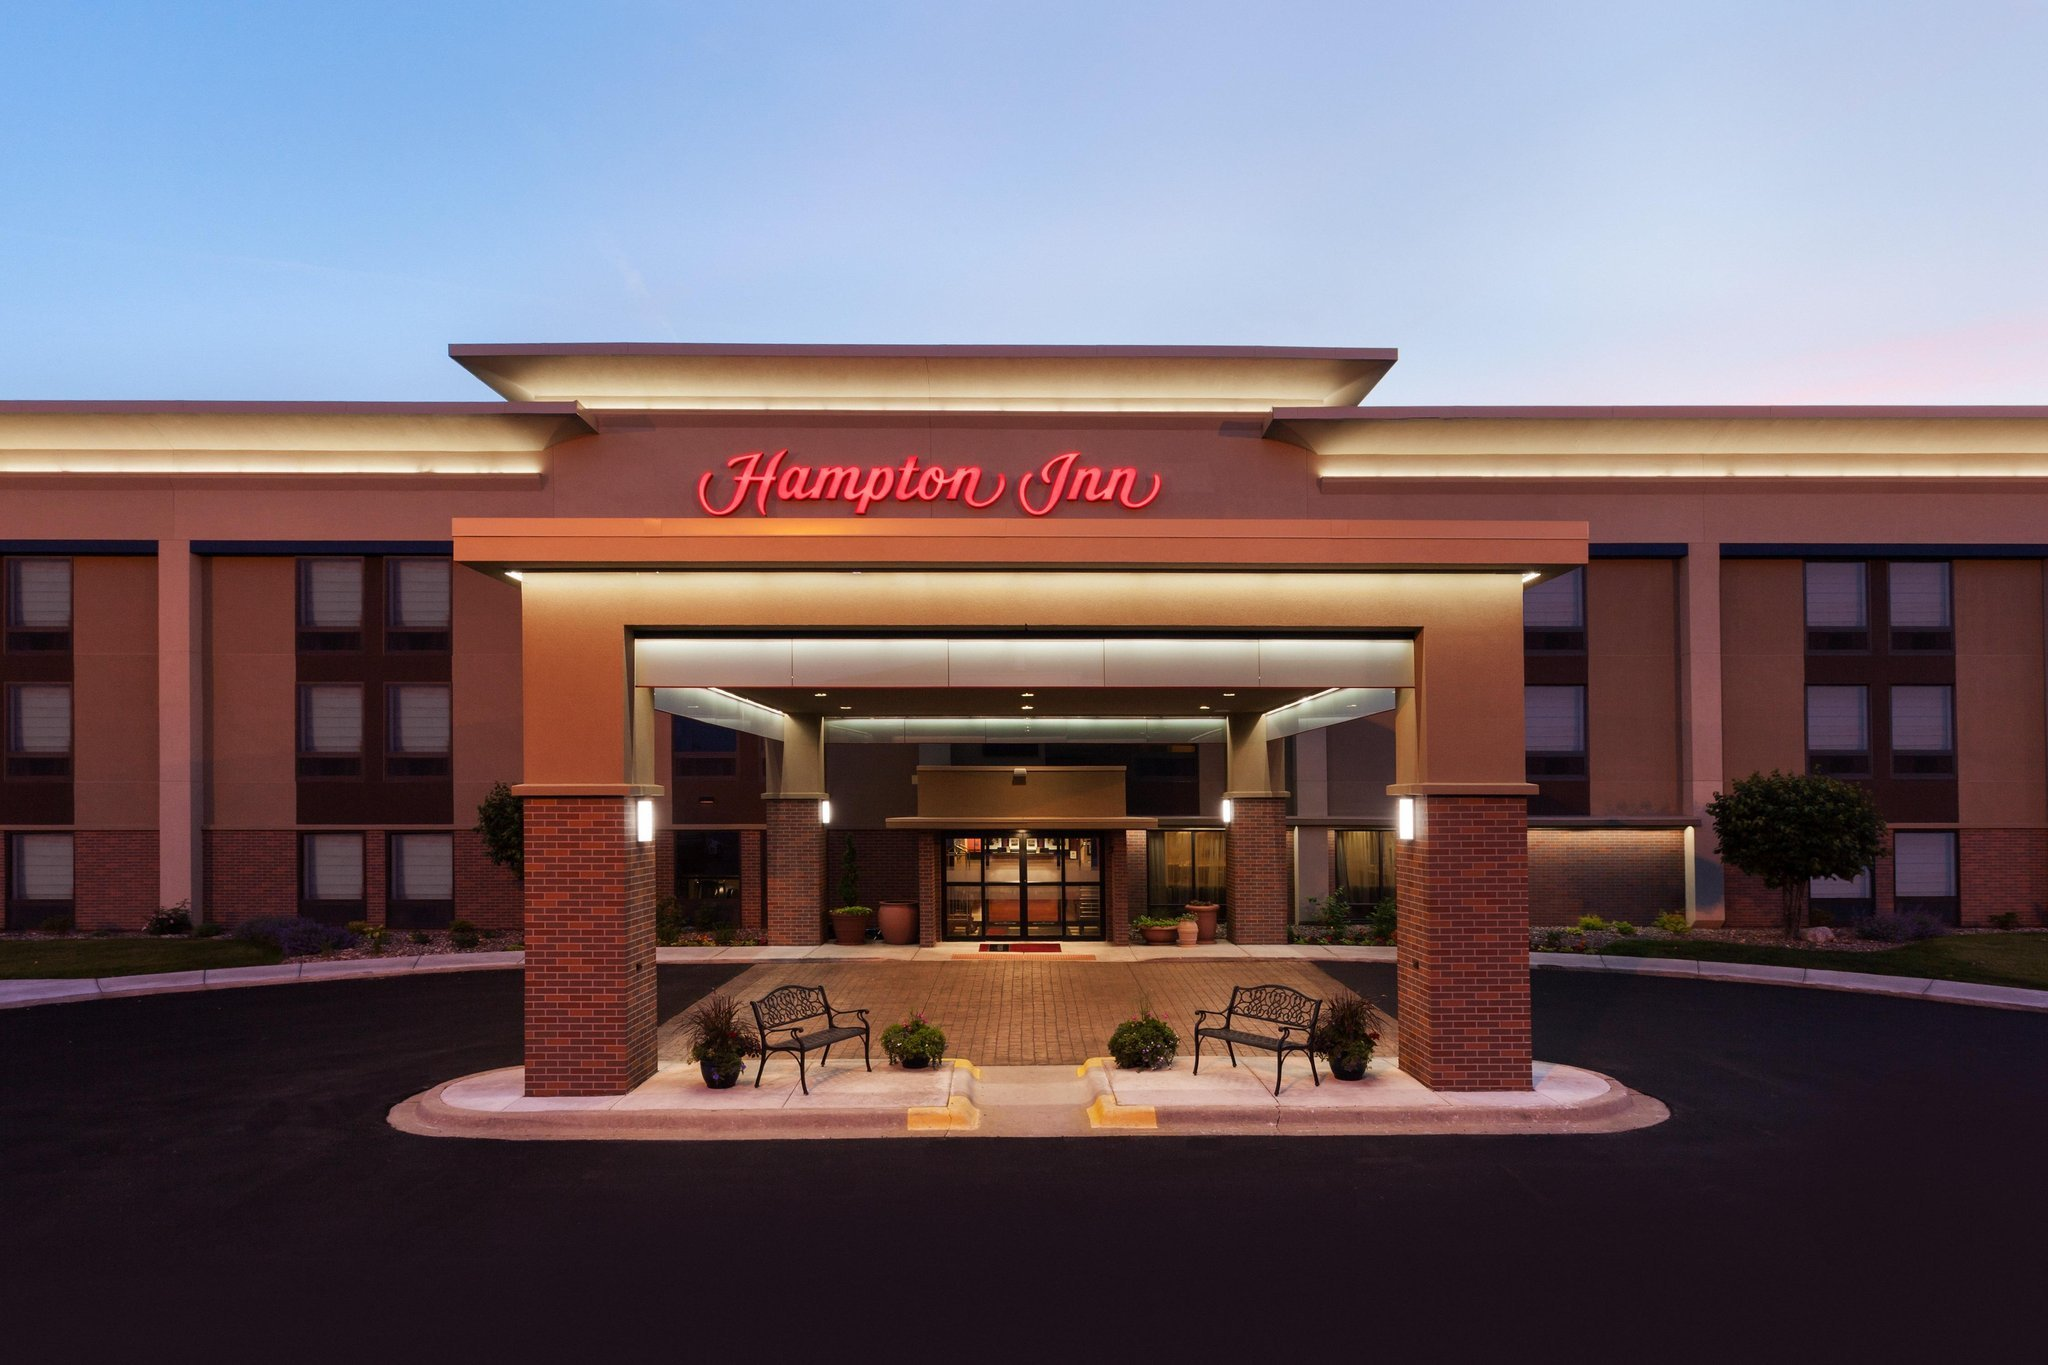 Hampton Inn by Hilton Joliet I-55